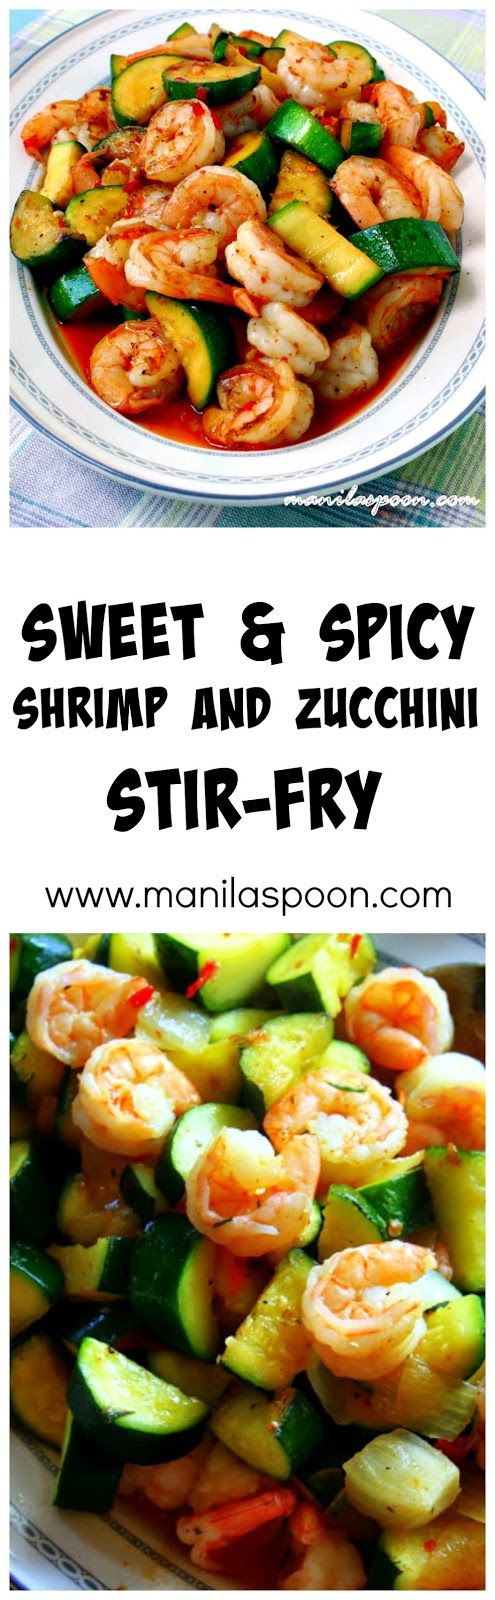 -                                                      Love shrimps? Only 5 minutes to make this flavorful SWEET and SPICY SHRIMP and ZUCCHINI STIR-FRY! Quick and easy deliciousness!   *  ~  for LC, sweeten your own chili sauce!